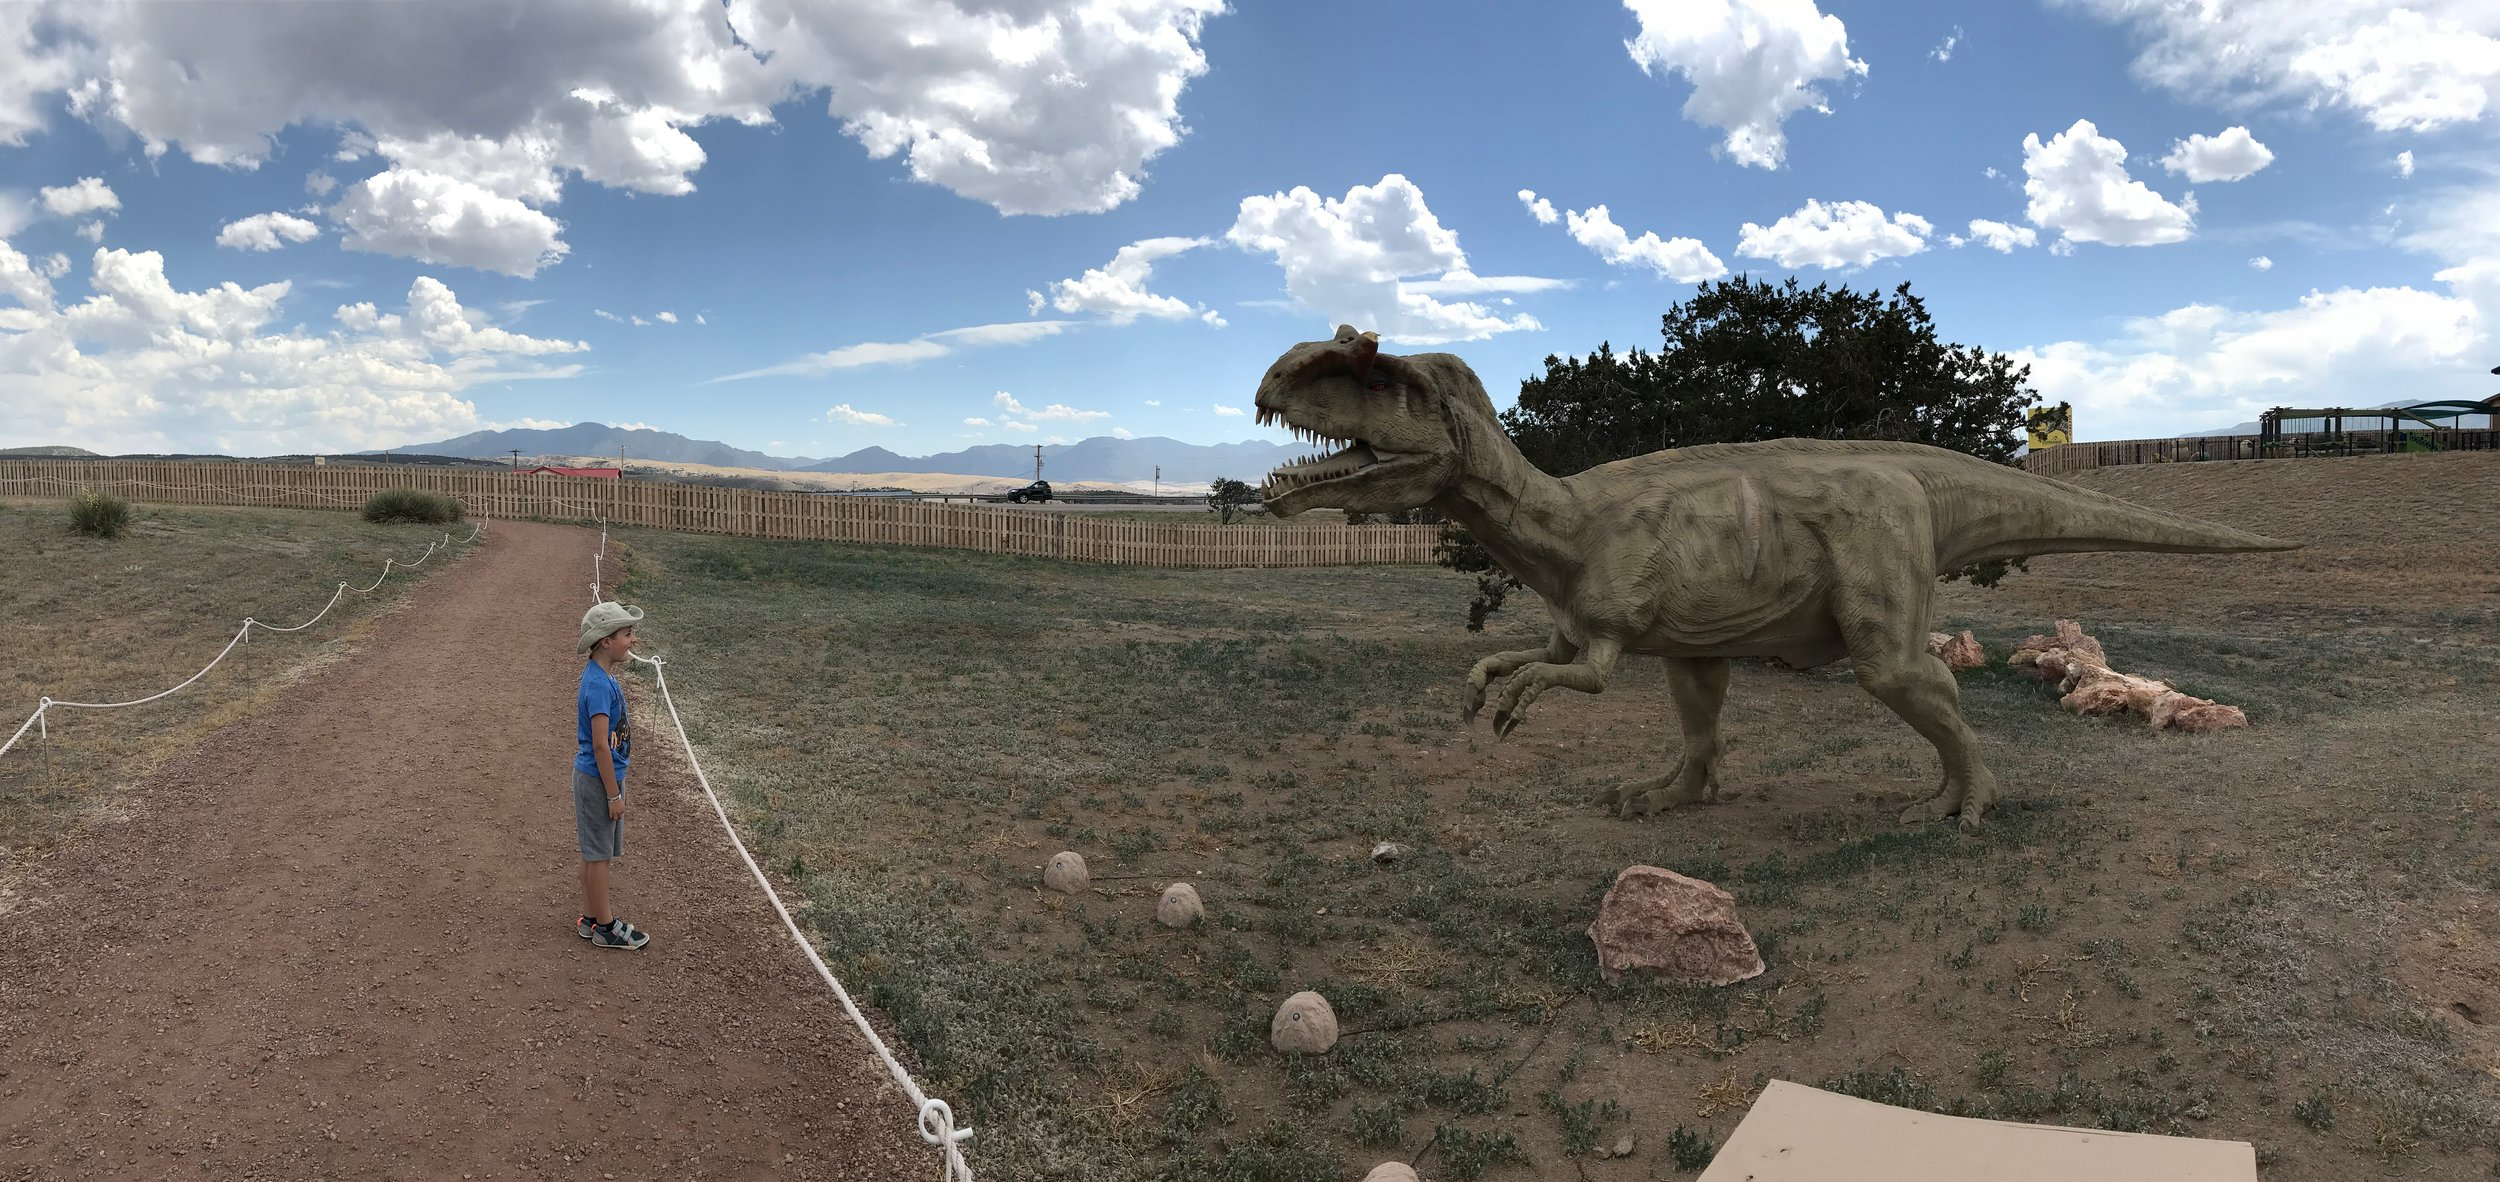 Royal Gorge Dinosaur Experience Trail